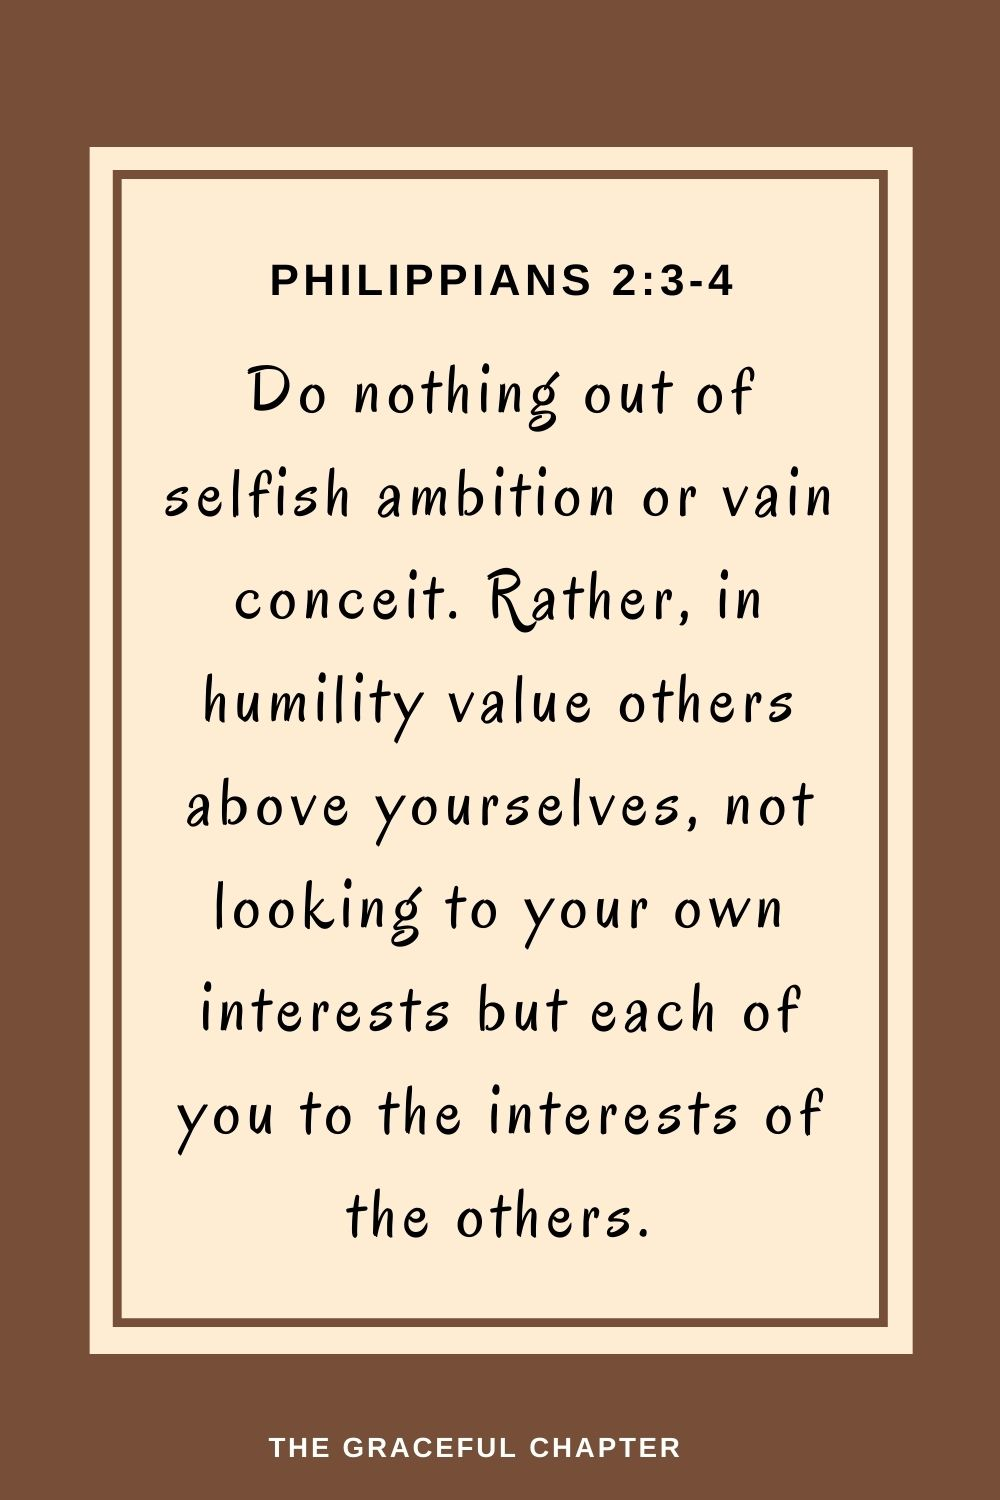 Do nothing out of selfish ambition or vain conceit.Rather, in humility value others above yourselves,not looking to your own interests but each of you to the interests of the others. Do nothing out of selfish ambition or vain conceit.Rather, in humility value others above yourselves,not looking to your own interests but each of you to the interests of the others. Philippians 2:3-4